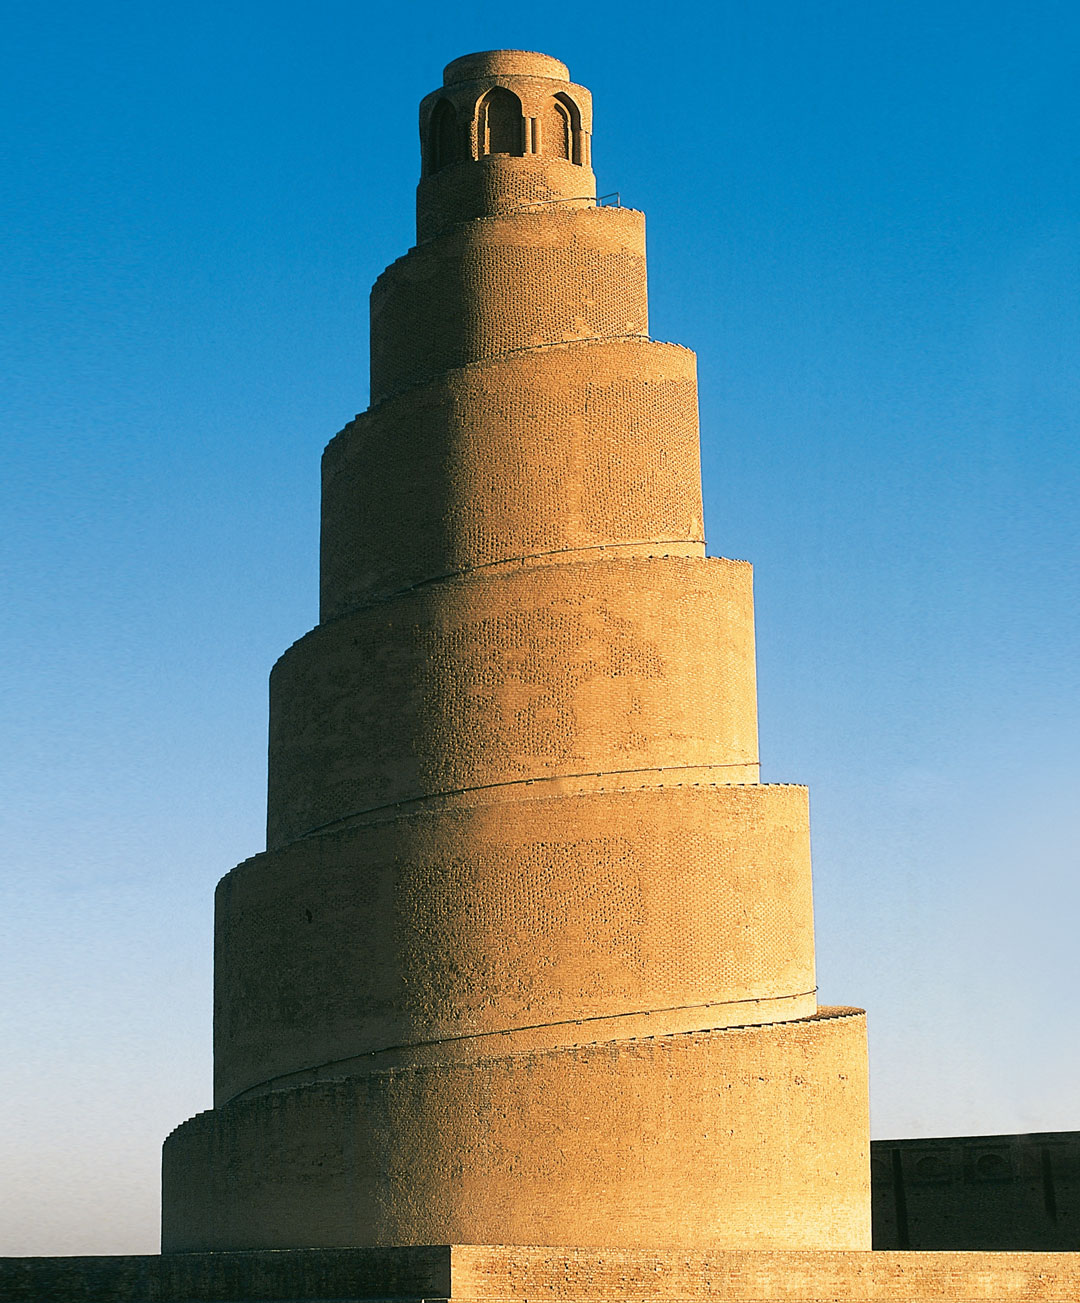 Malwiya Minaret, Samarra, Iraq, 851. From Brick